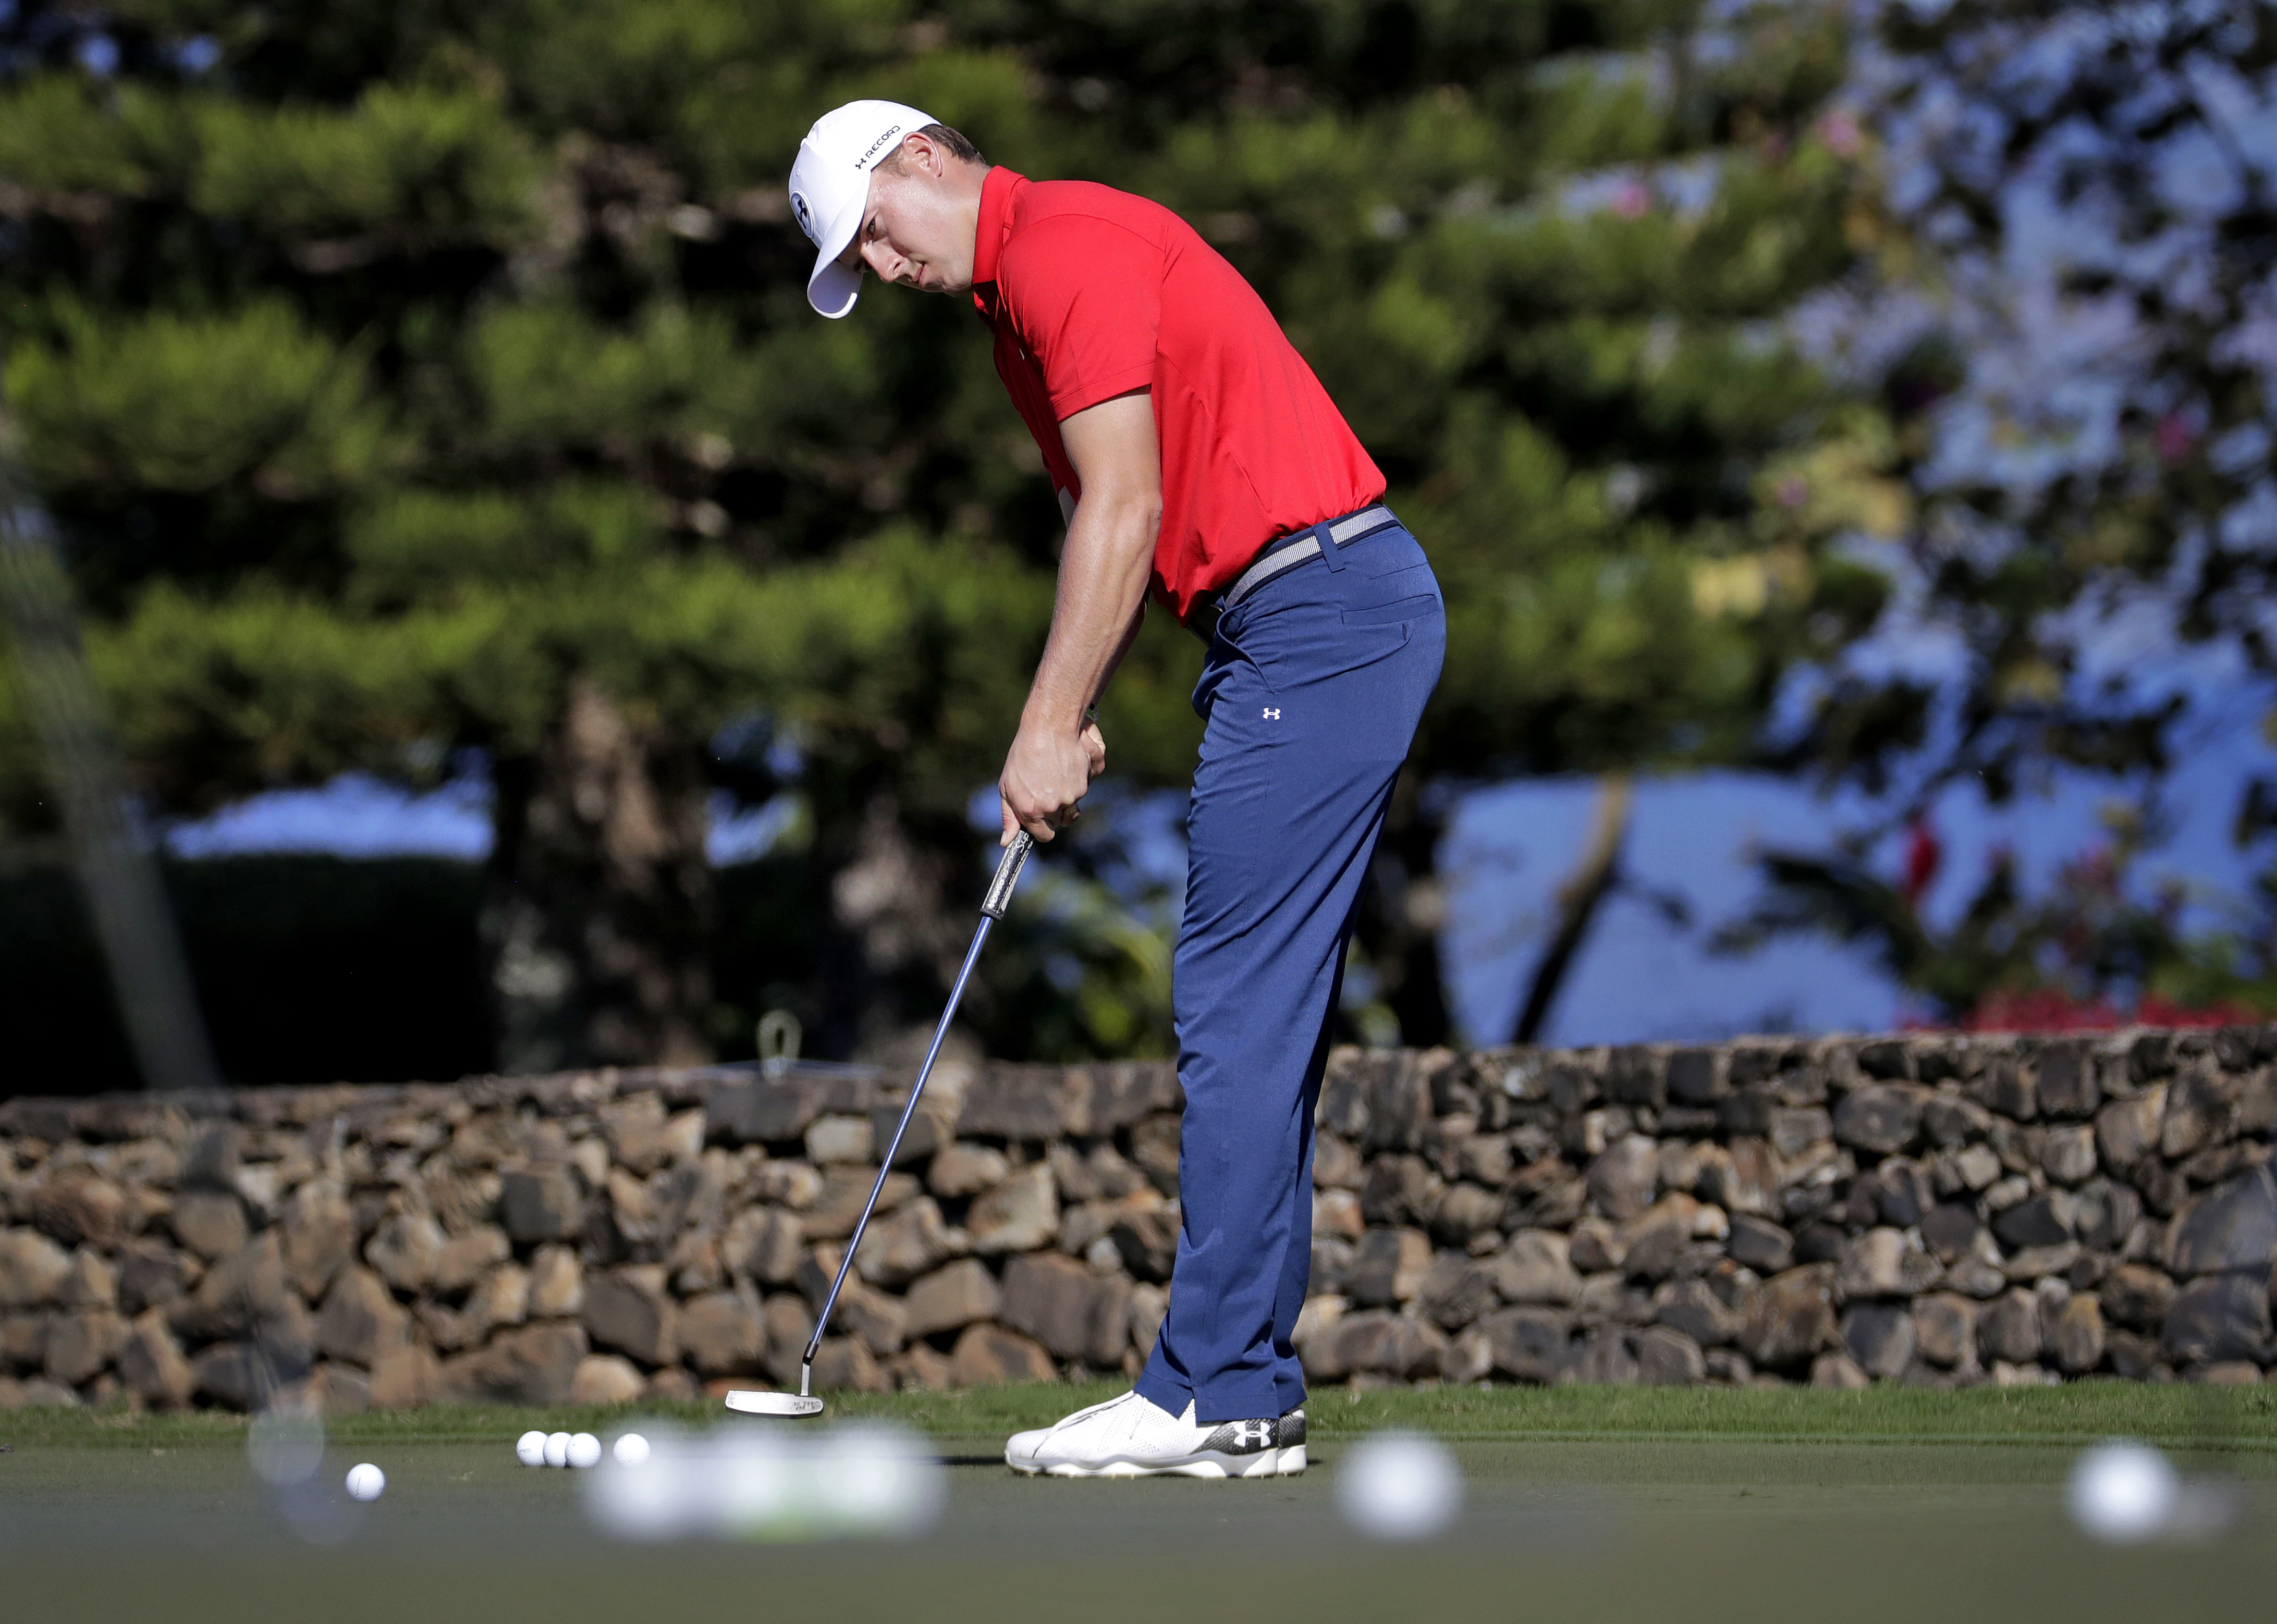 Defending champion Jordan Spieth practices on the putting green prior to the Tournament of Champions golf event, Wednesday, Jan. 4, 2017, at Kapalua Plantation Course in Kapalua, Hawaii. (AP Photo/Matt York)